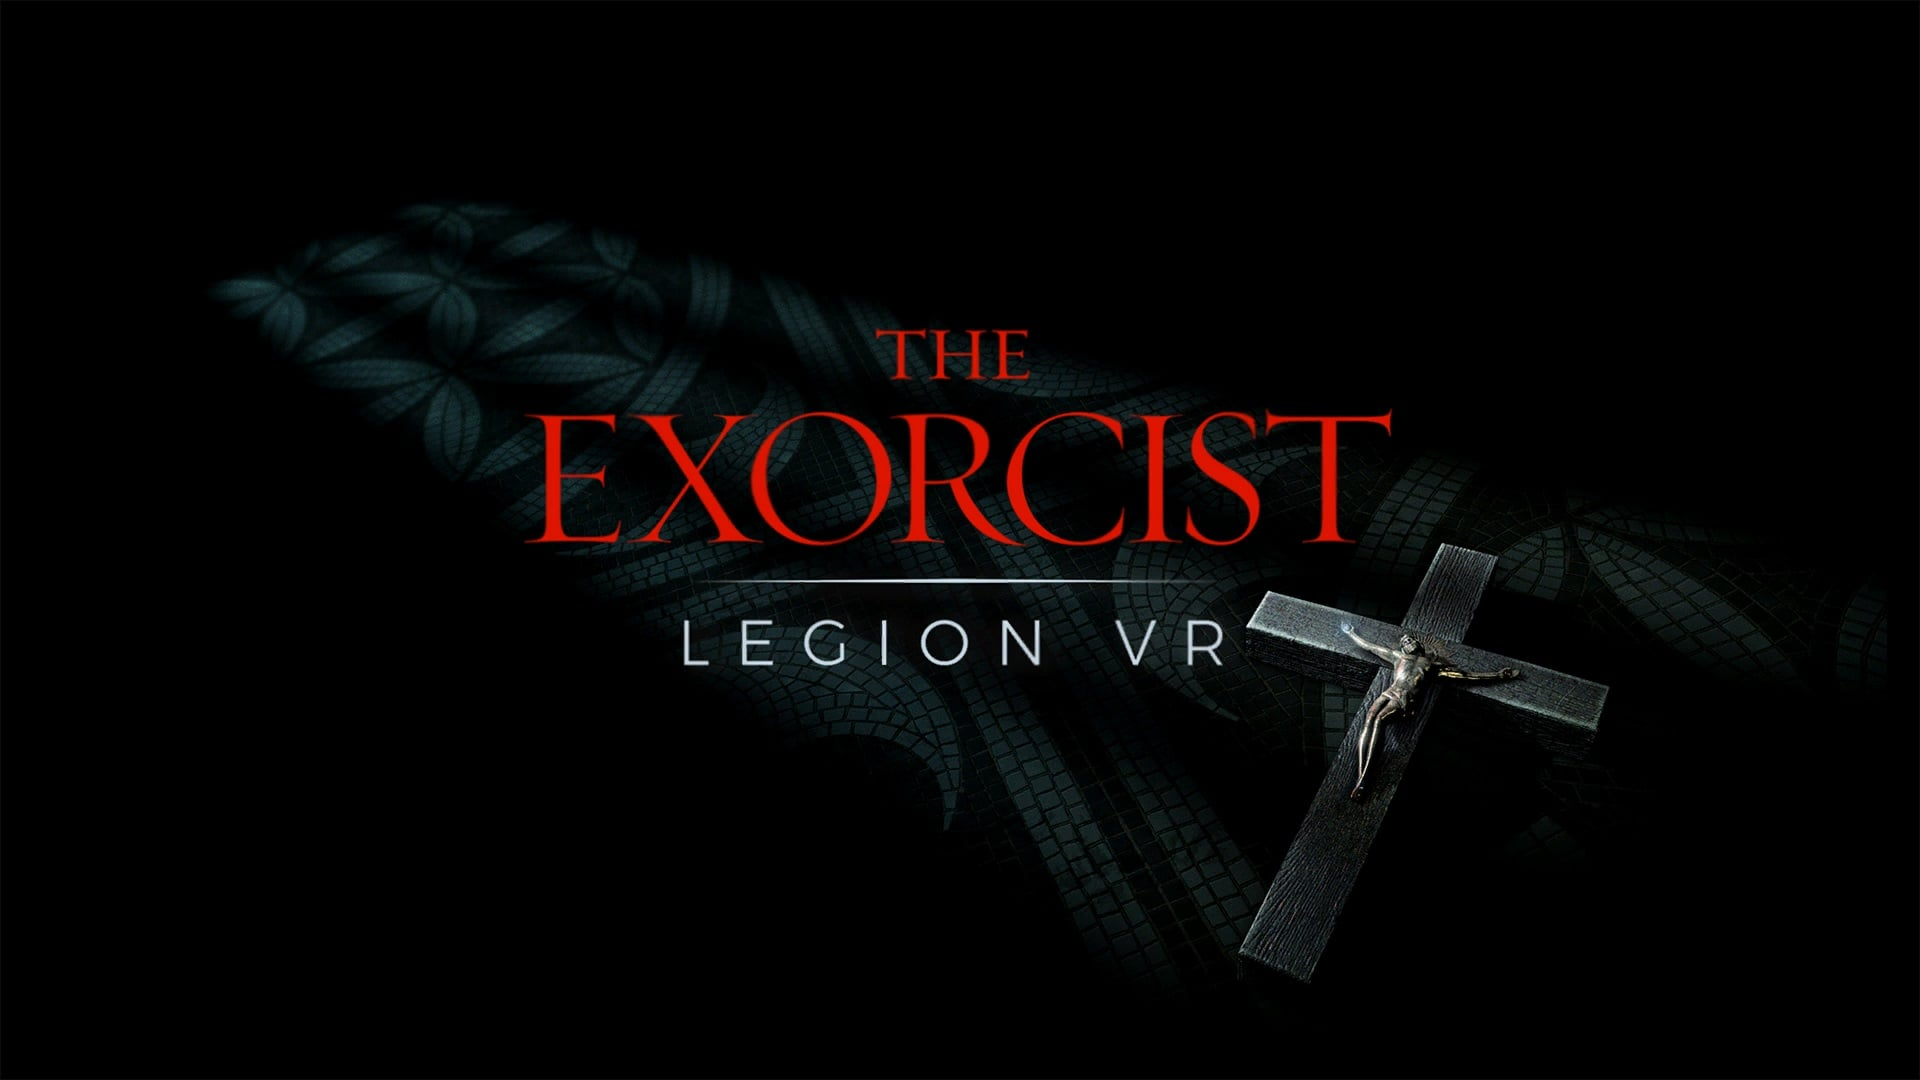 The Exorcist: Legion VR Episodes 1-3 (PSVR) Review